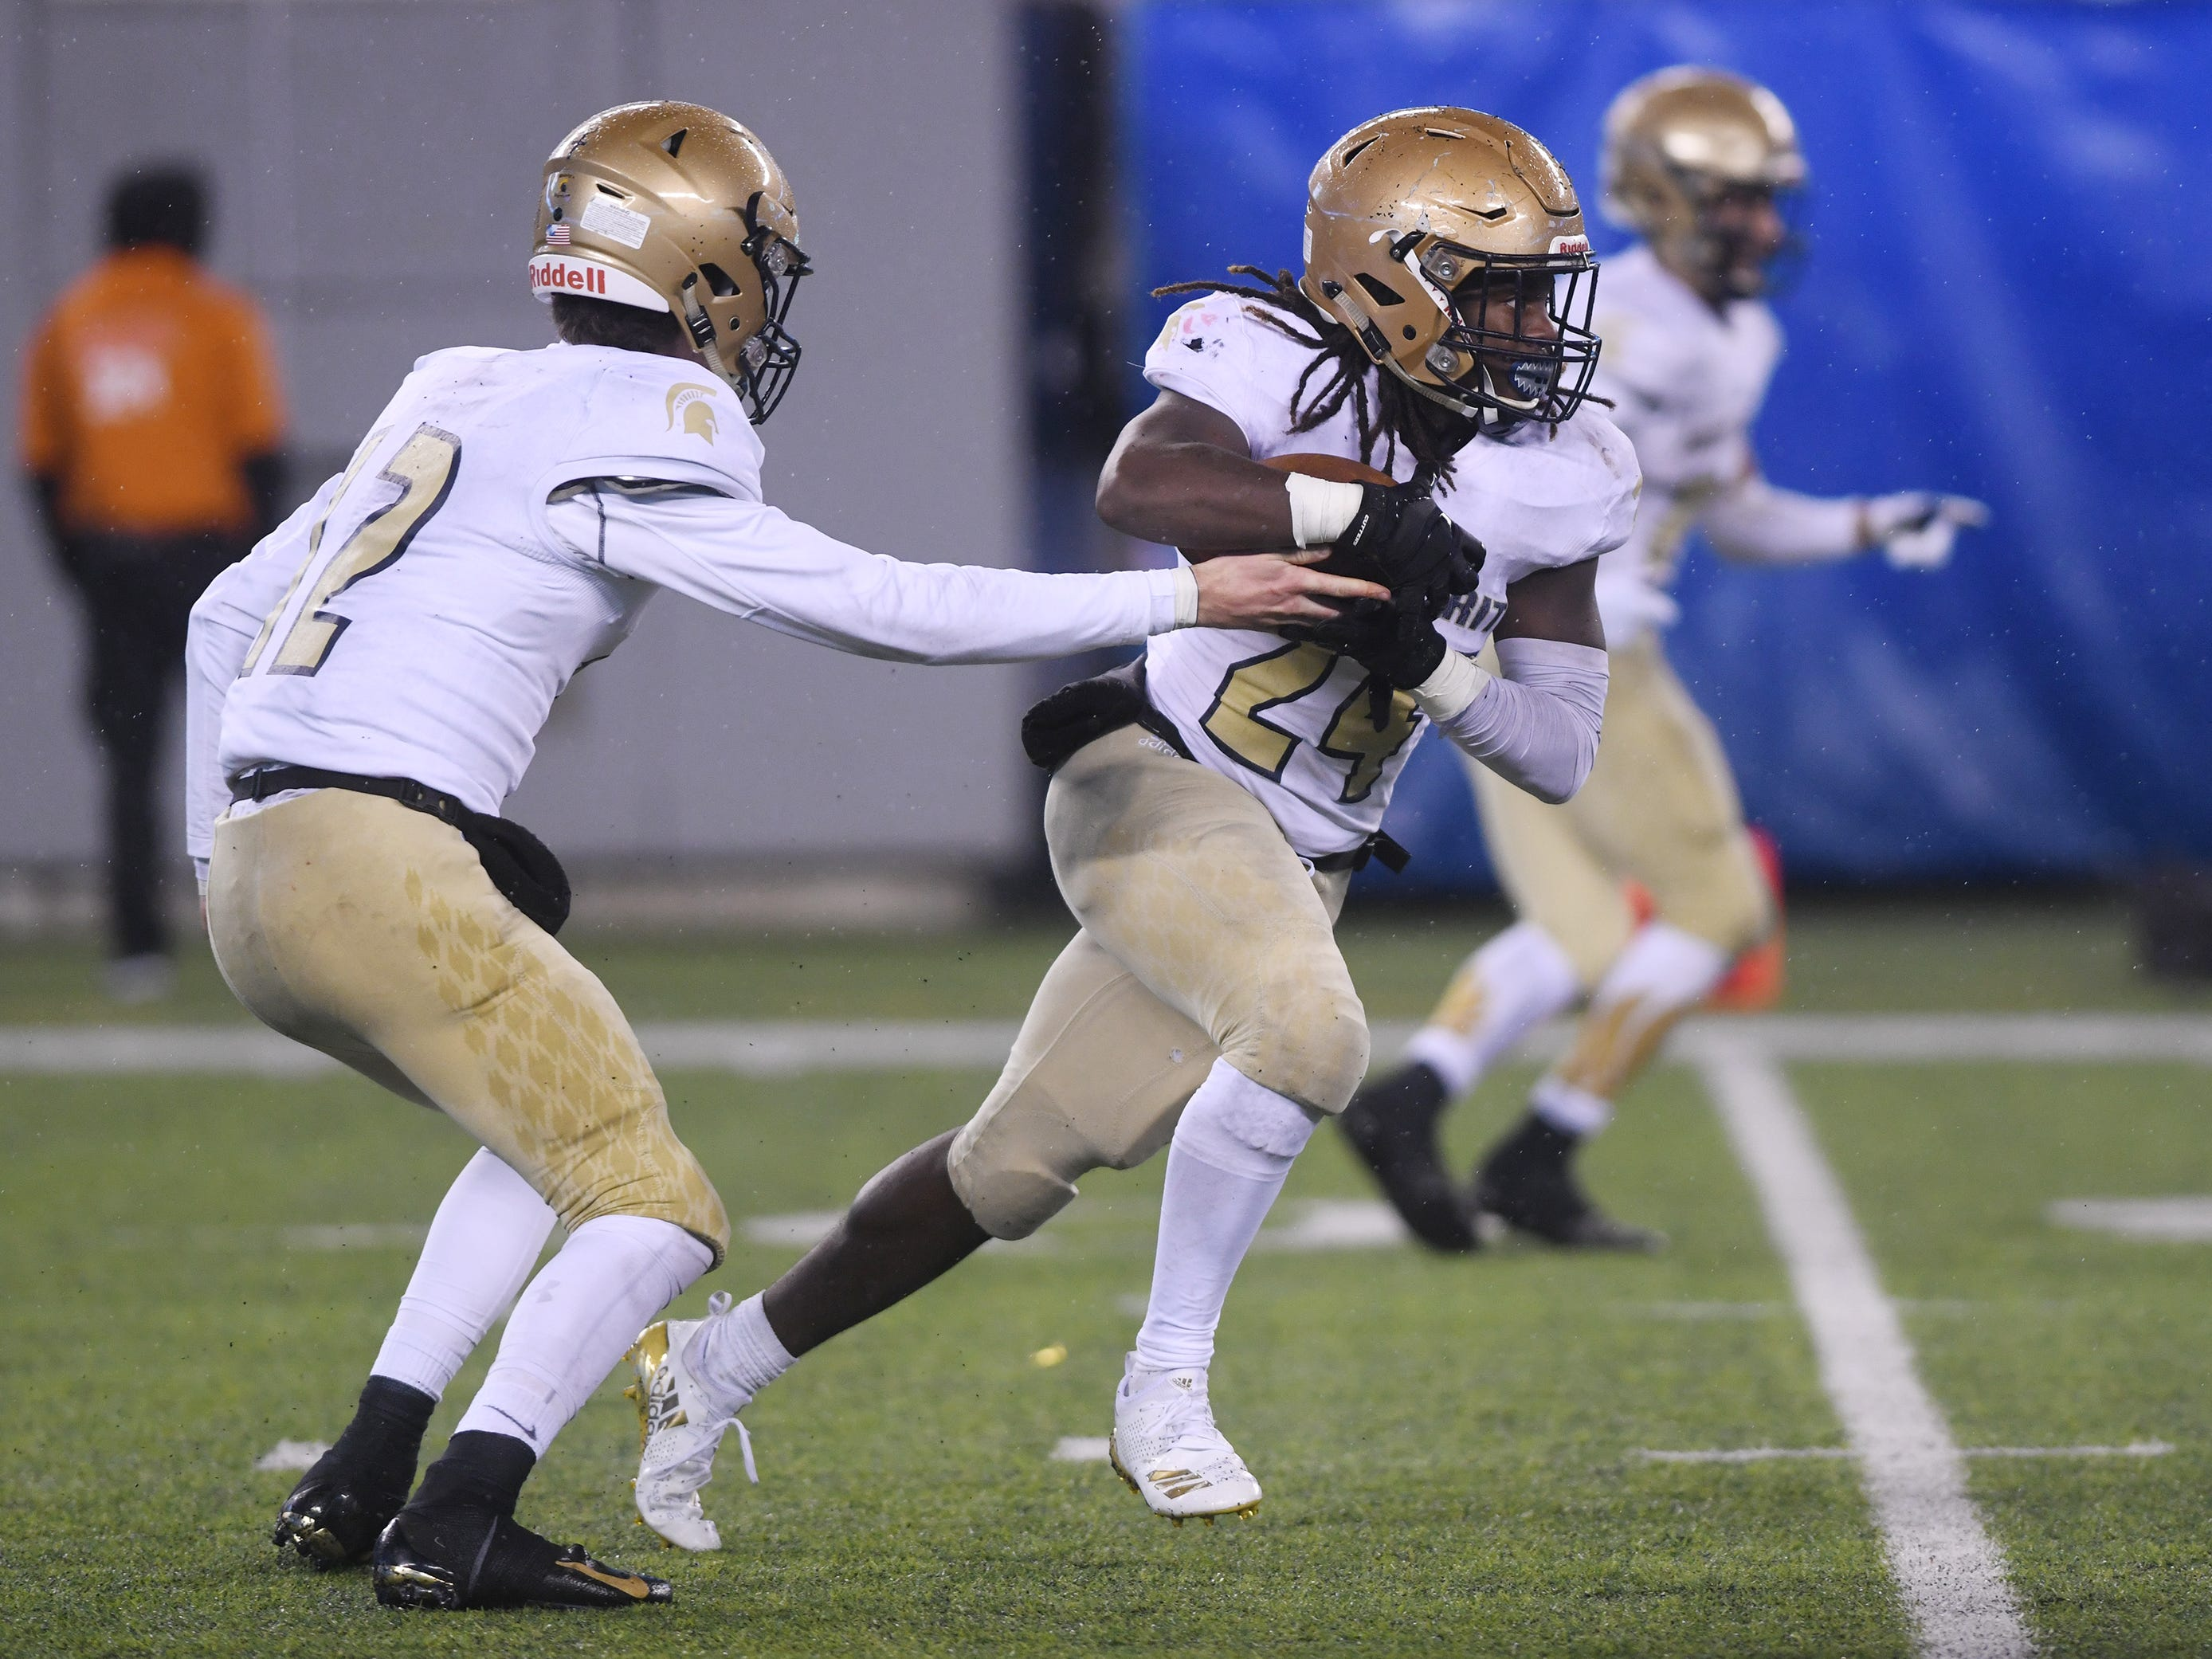 Holy Spirit's E'lijah Gray runs for a gain against St. Joseph after a handoff from Ryan Yost. The Wildcats topped the Spartans, 41-22 at MetLife Stadium on Friday, November 30, 2018.